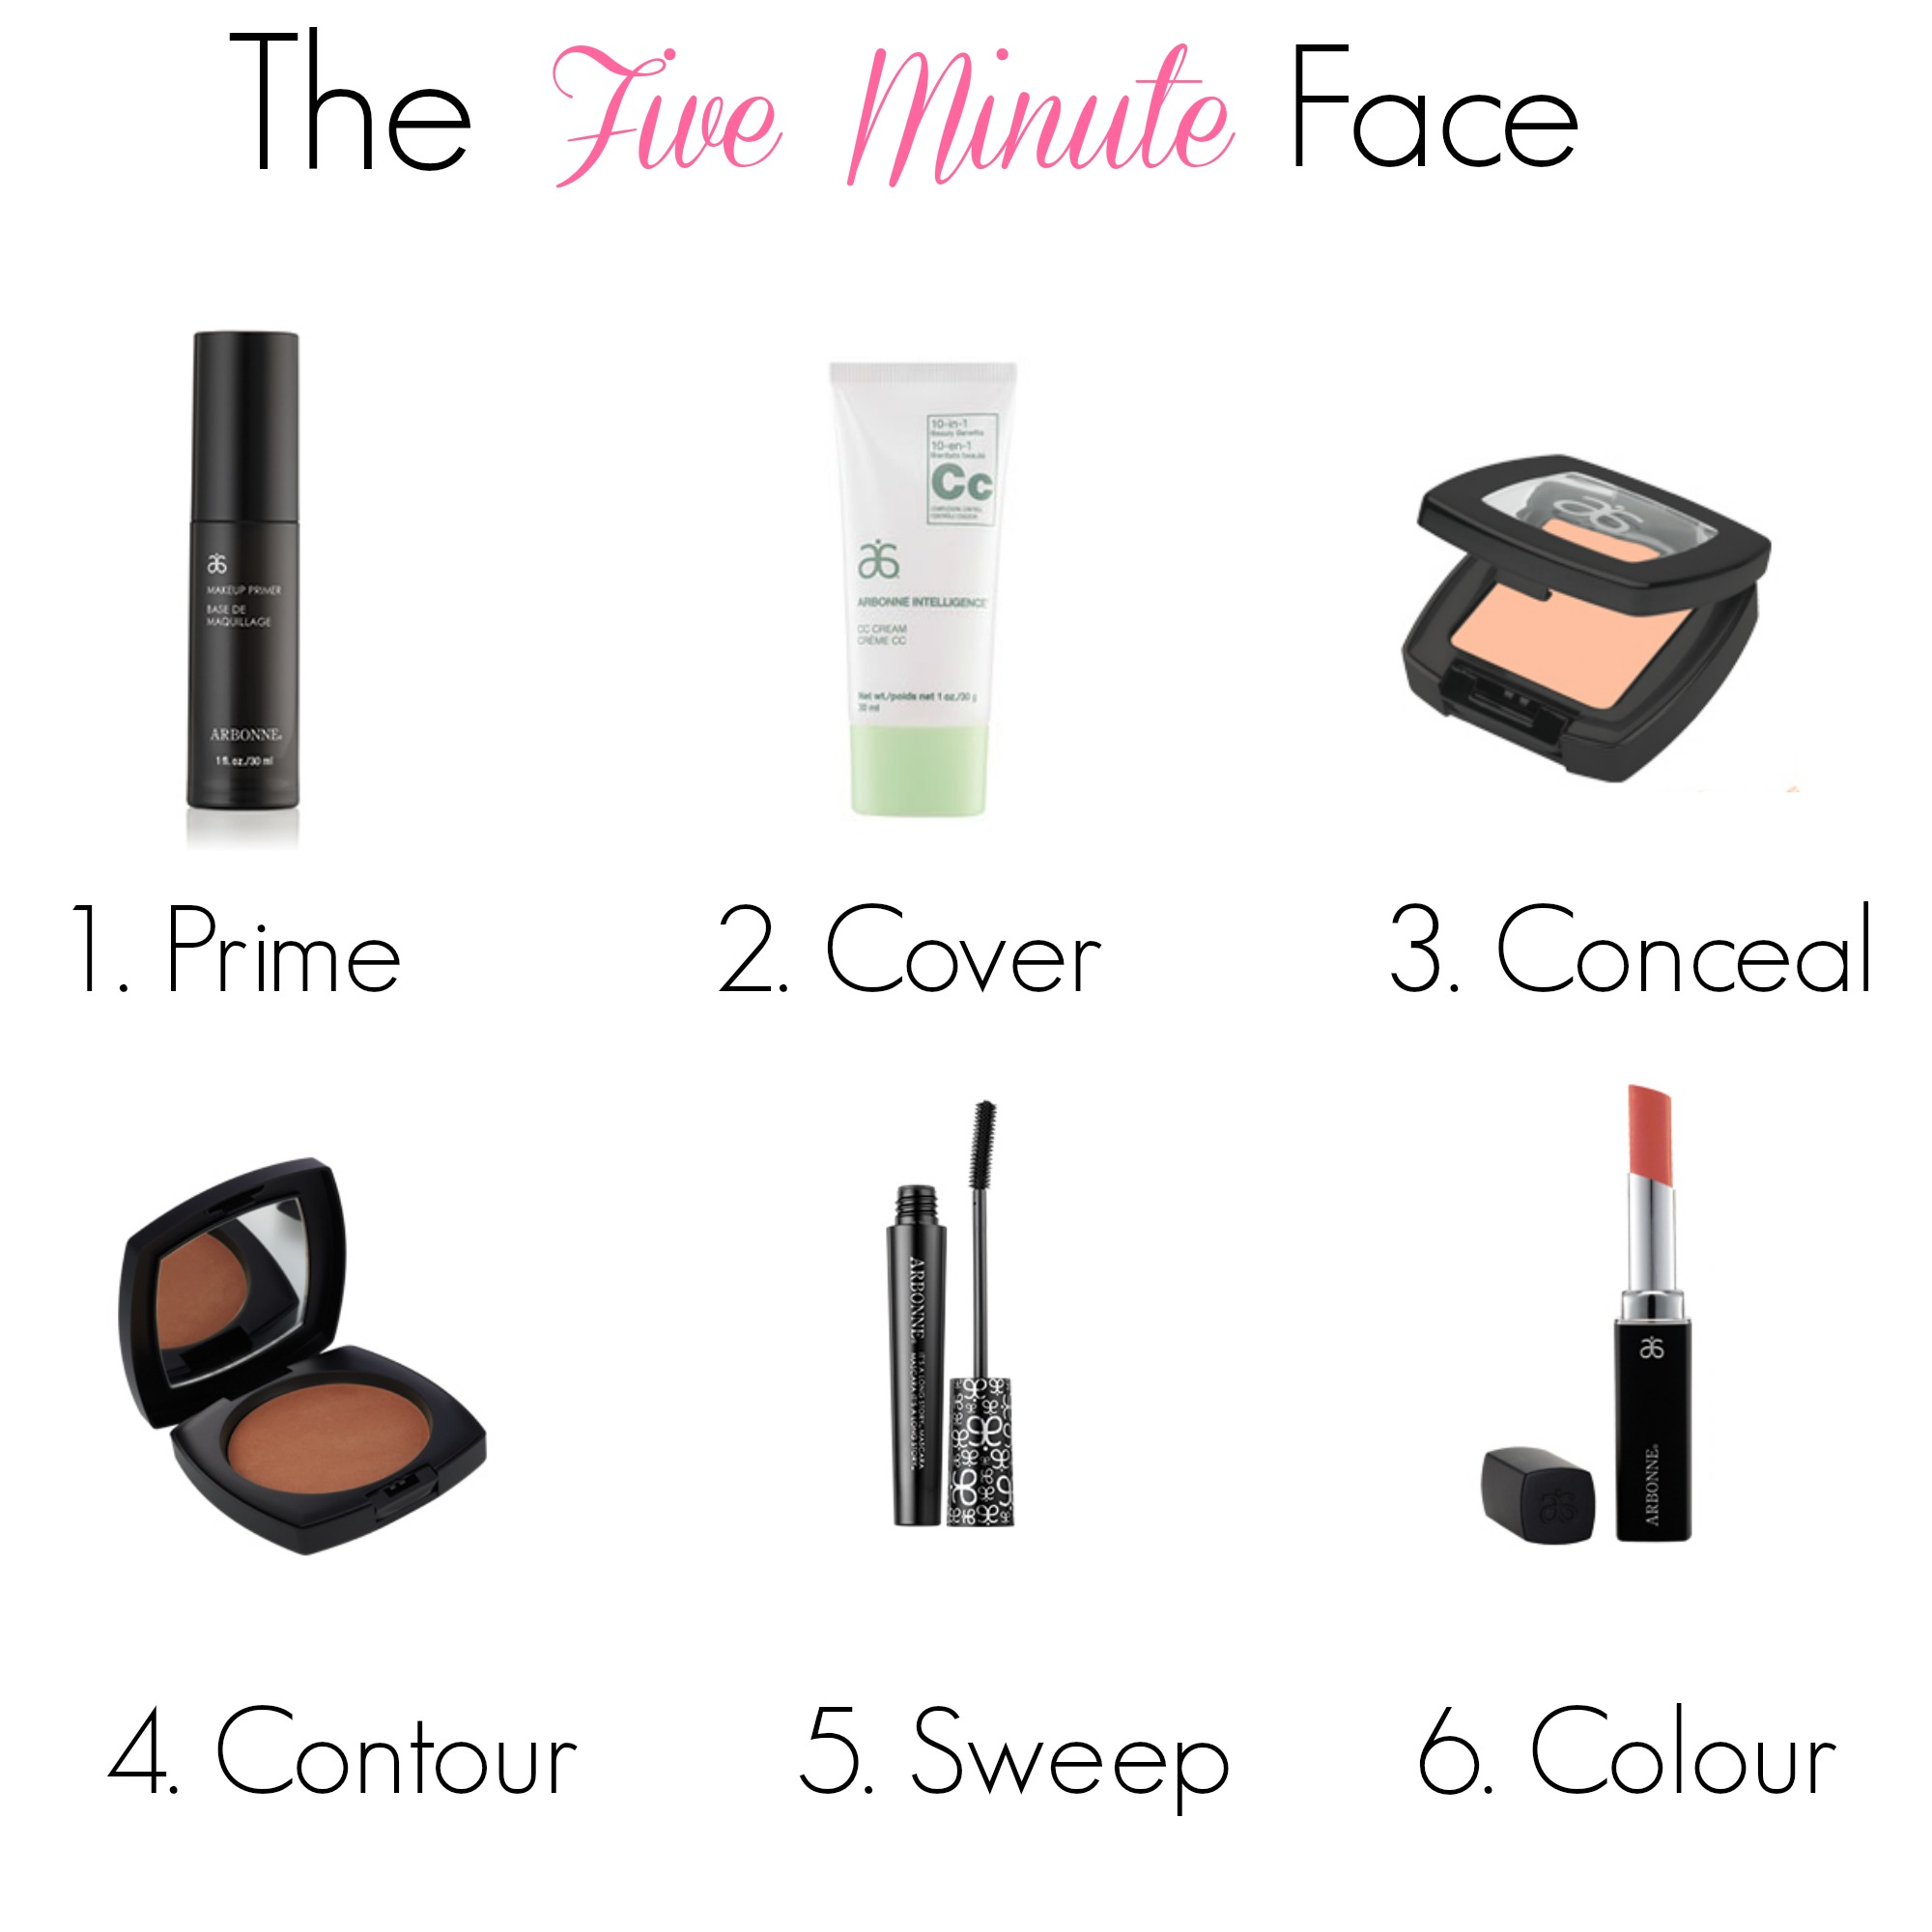 The Five Minute Face